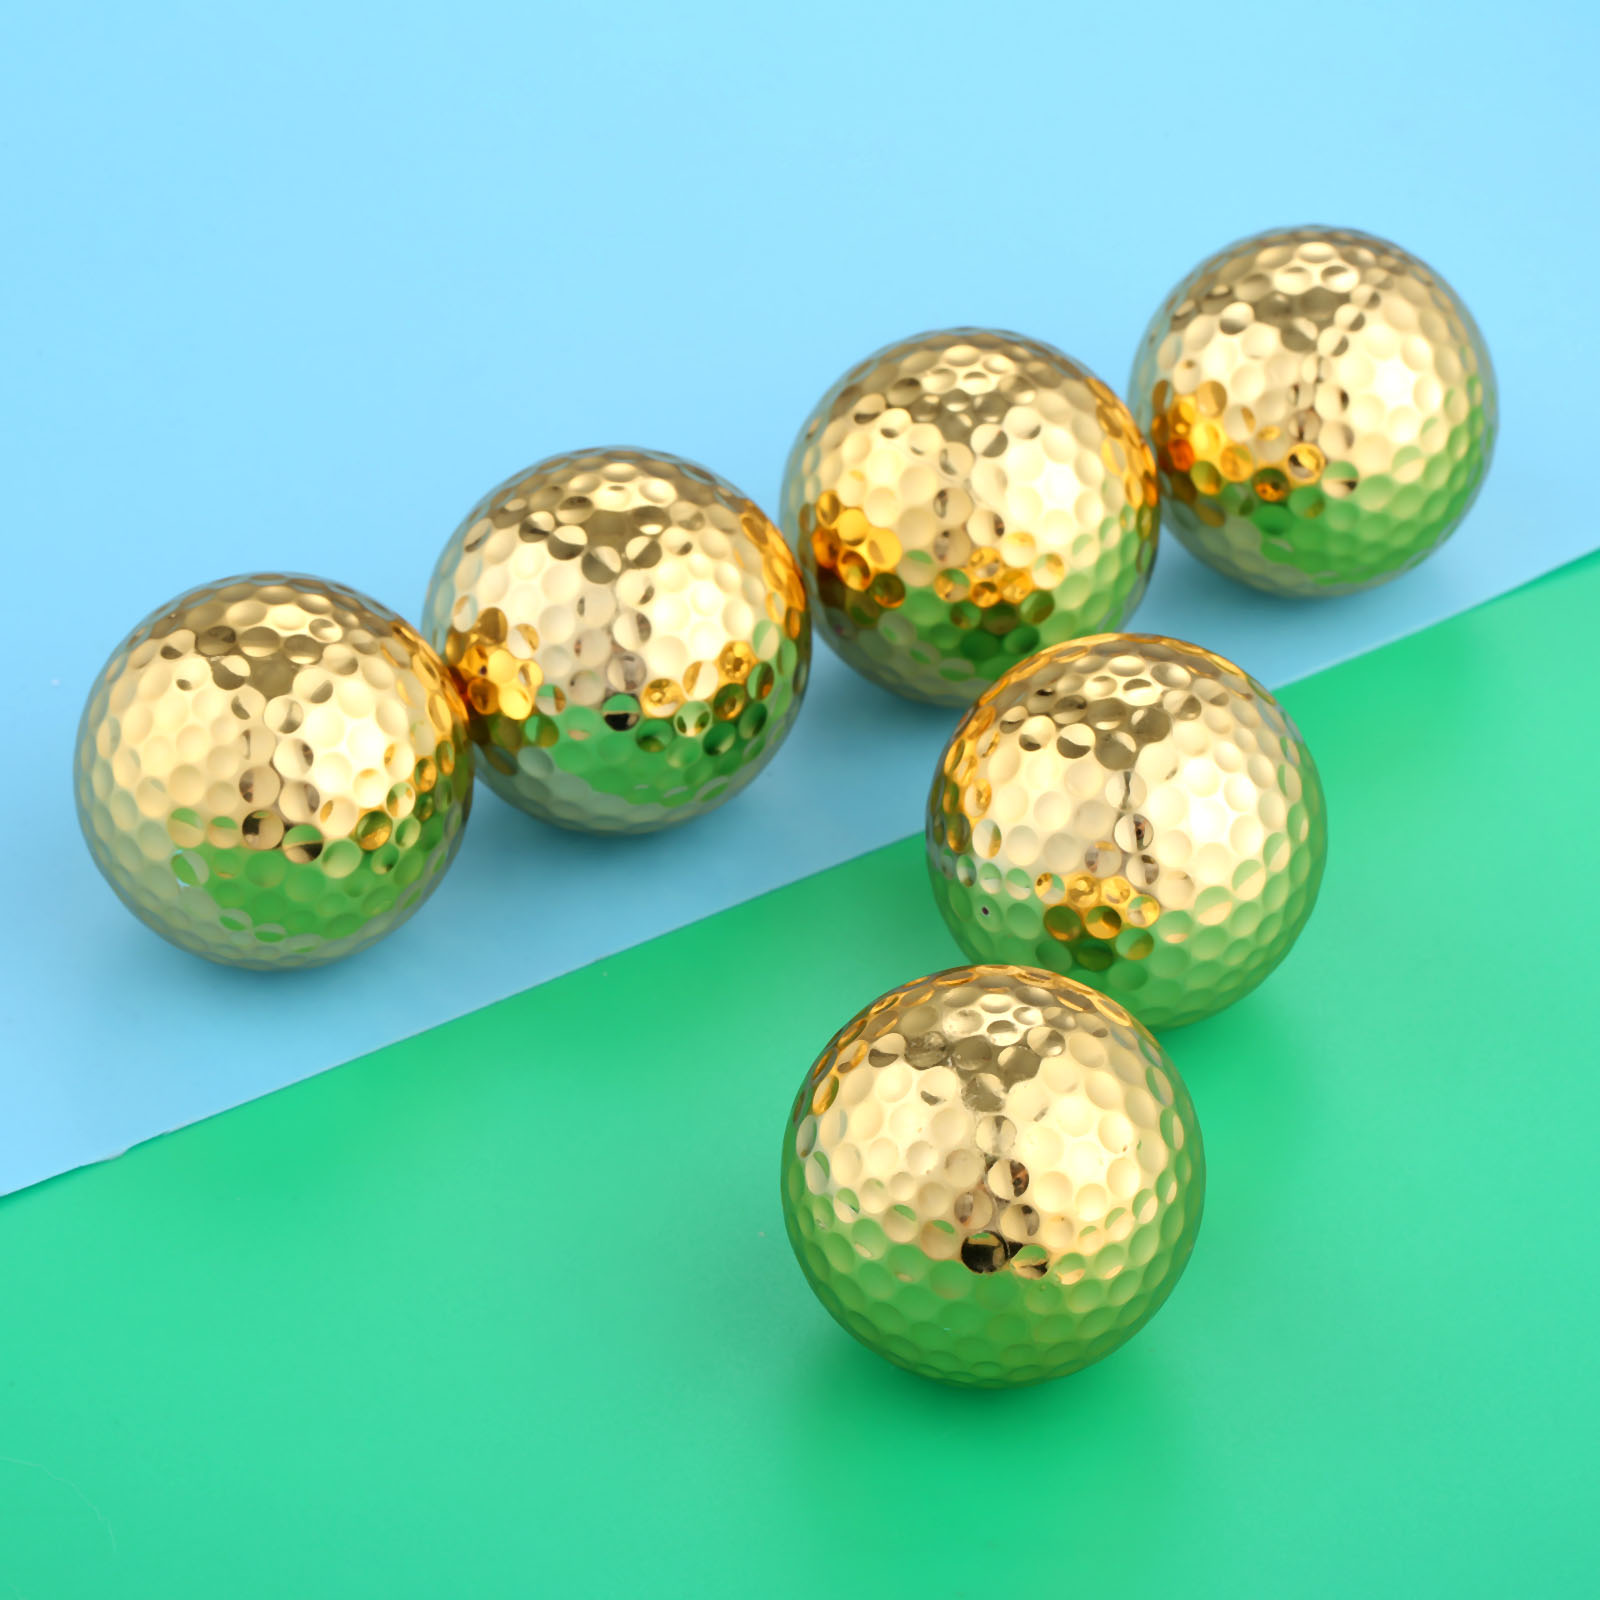 6 Pcs/Lot Two Layer Gold Color  Golf Balls Golf Practice Balls Golfer Training Accessories Diameter 42.67mm